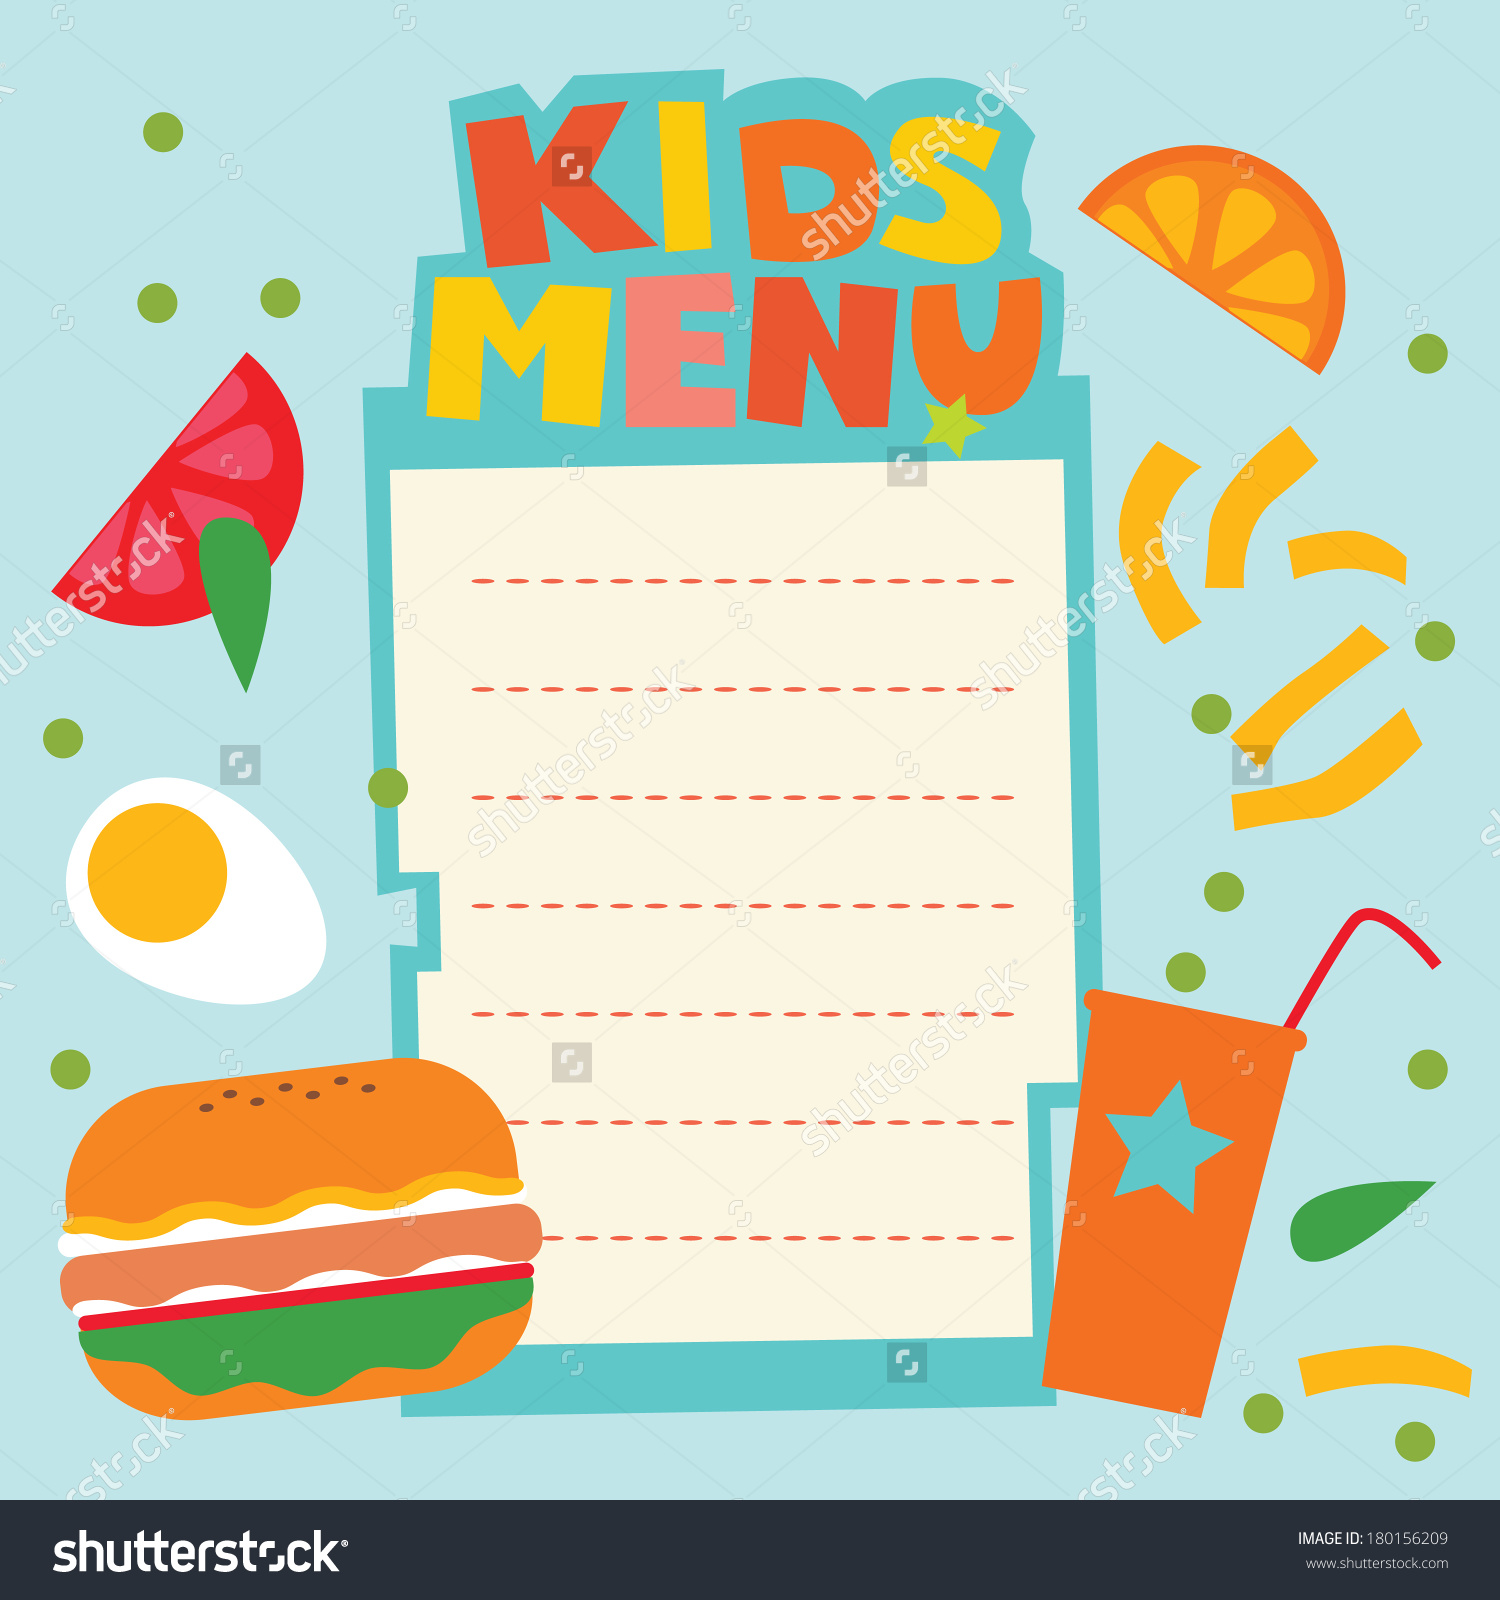 Kids menu design for Menue templates